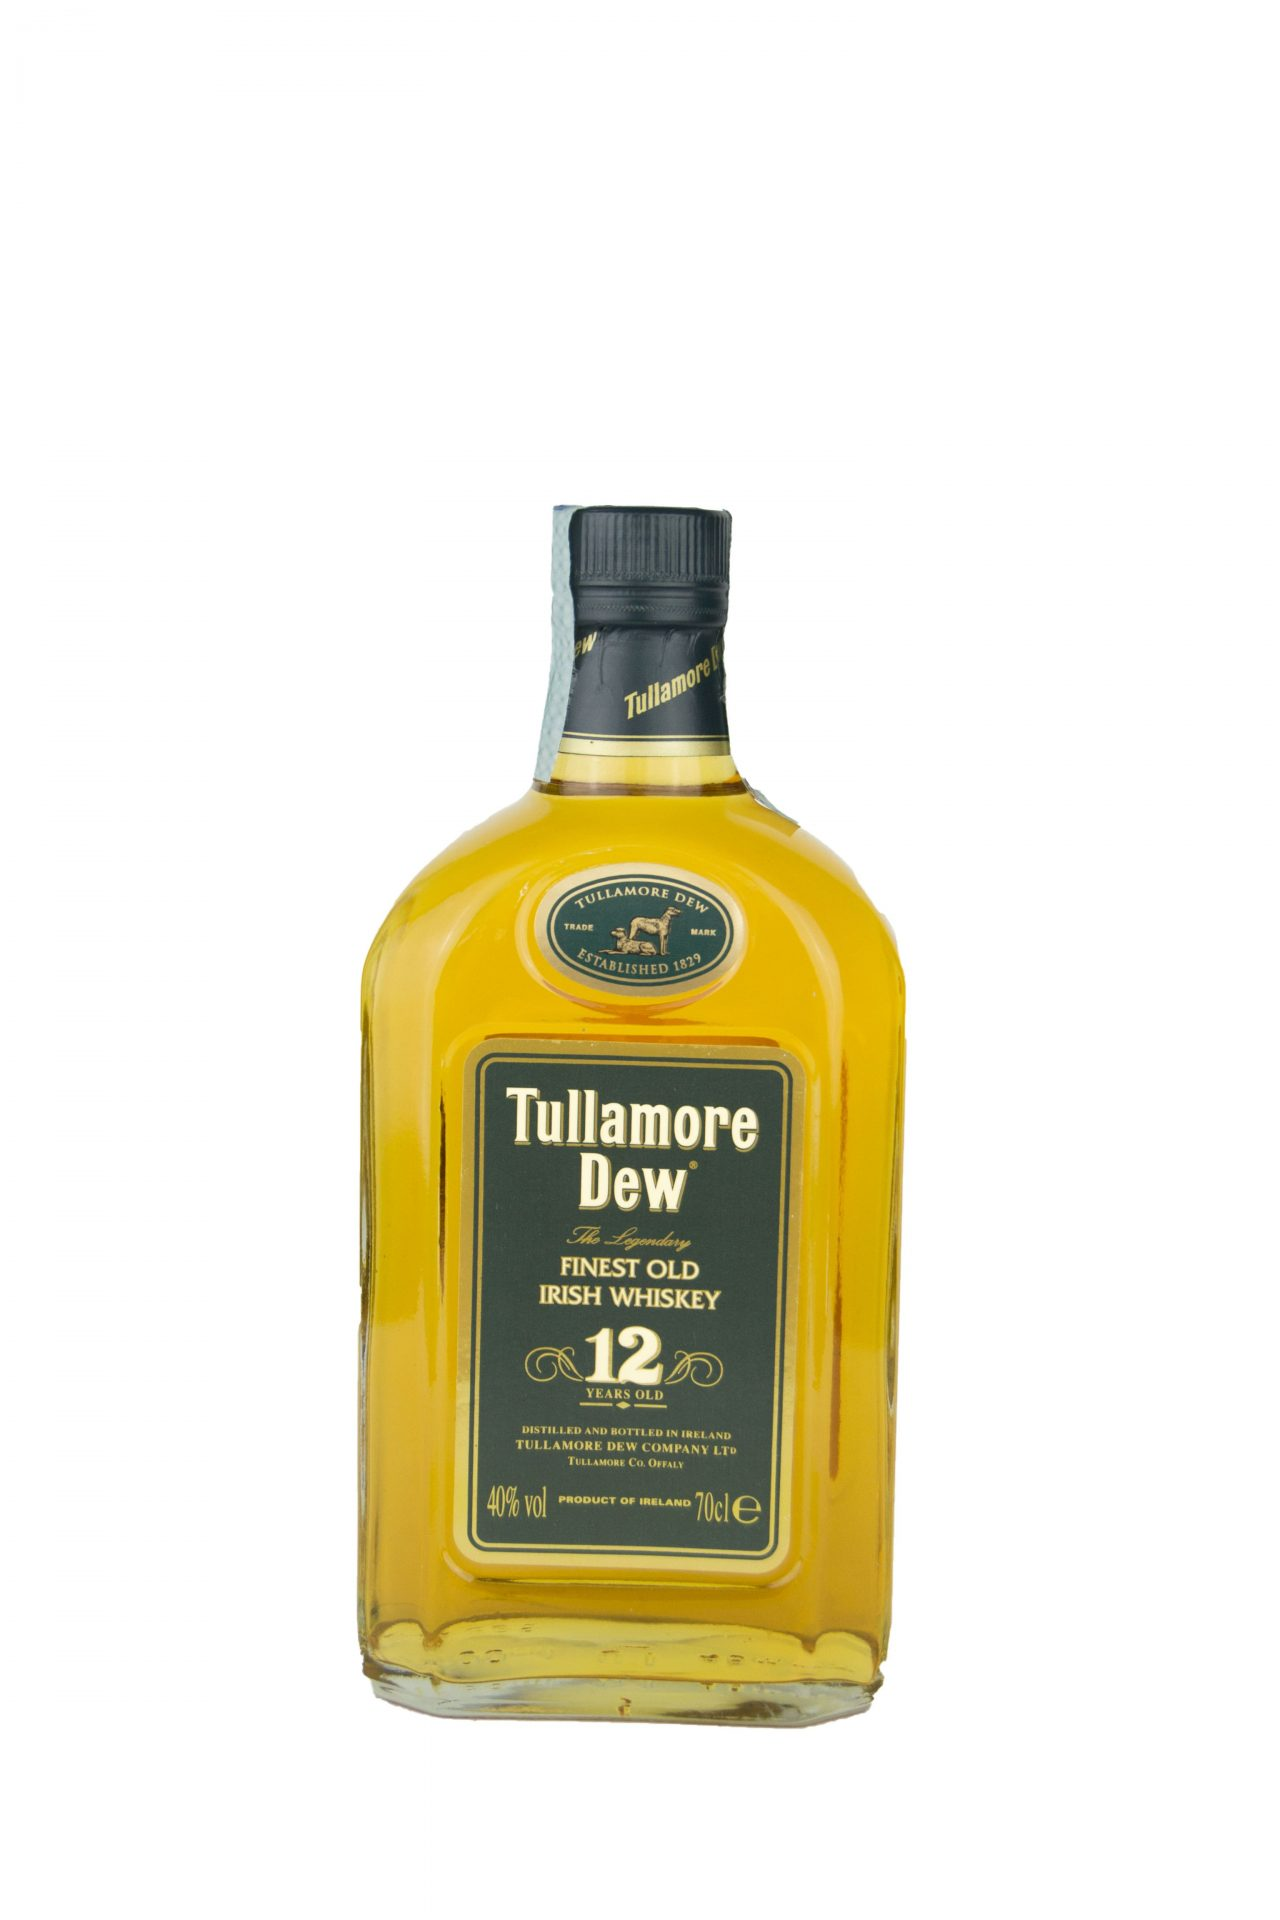 Tullamore Dew – Finest Old Irish Whisky 12 Years Old